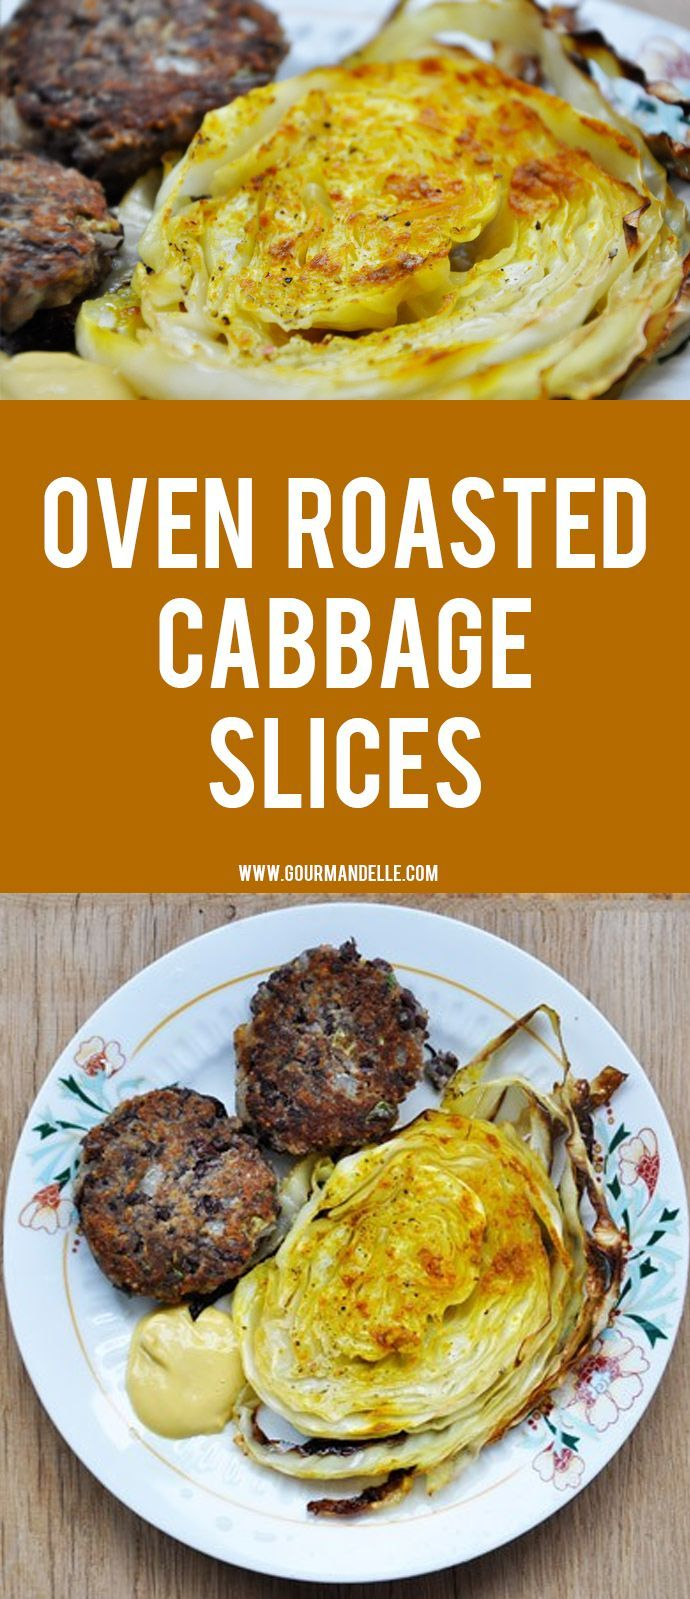 This oven roasted cabbage slices recipe is the best way to cook cabbage! Healthy, macrobiotic and vegan, what more can you wish for?! #cabbage #roasted #veganrecipes